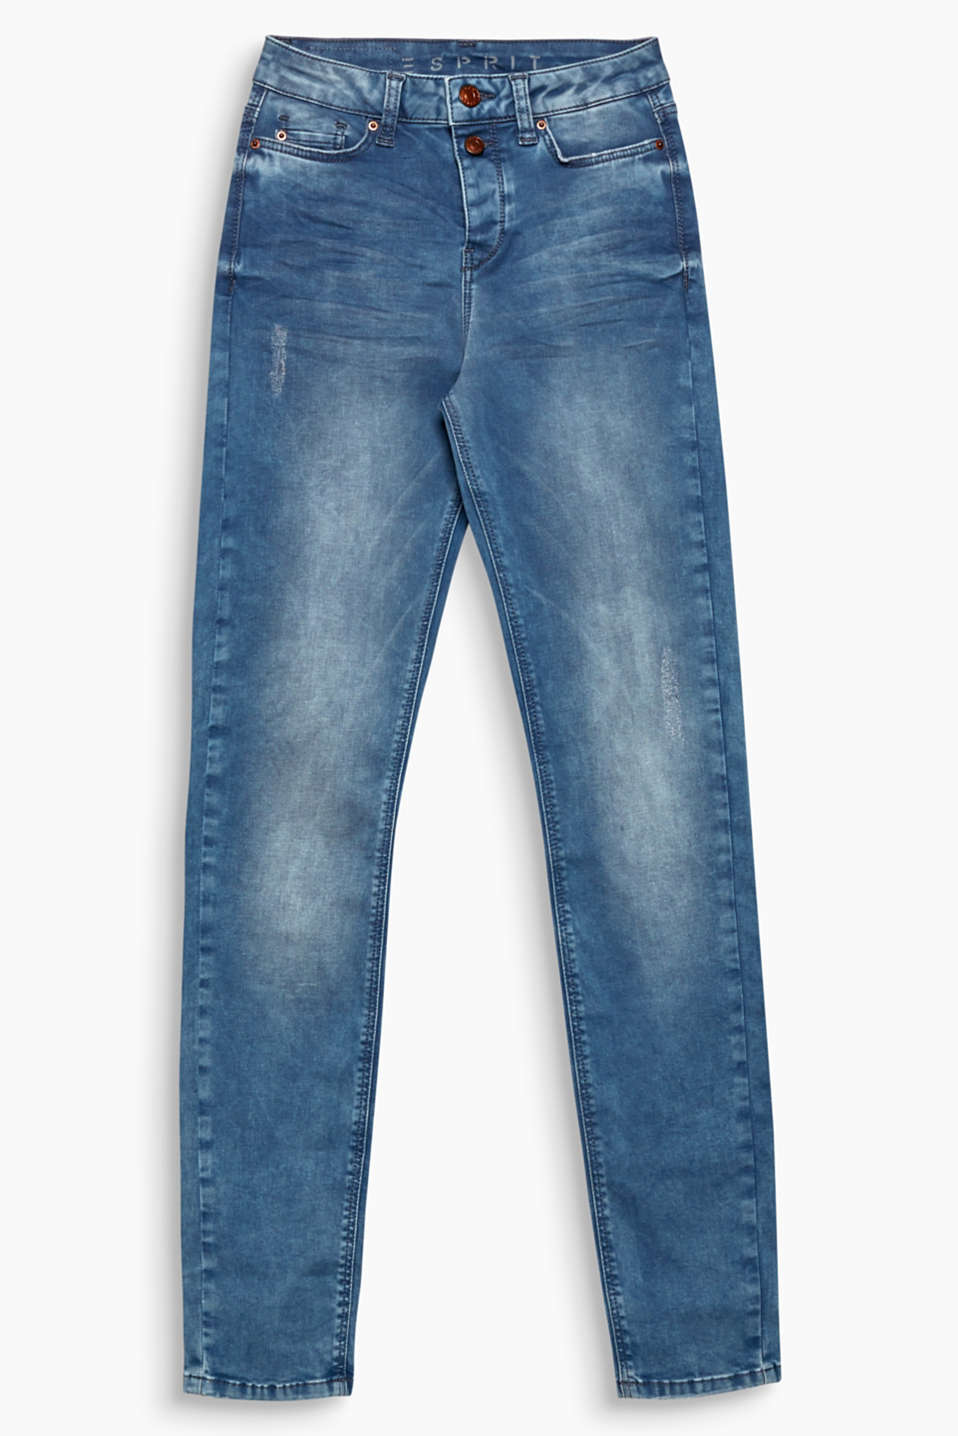 Stretch jeans in a cotton blend with a semi-concealed button placket and a vintage finish